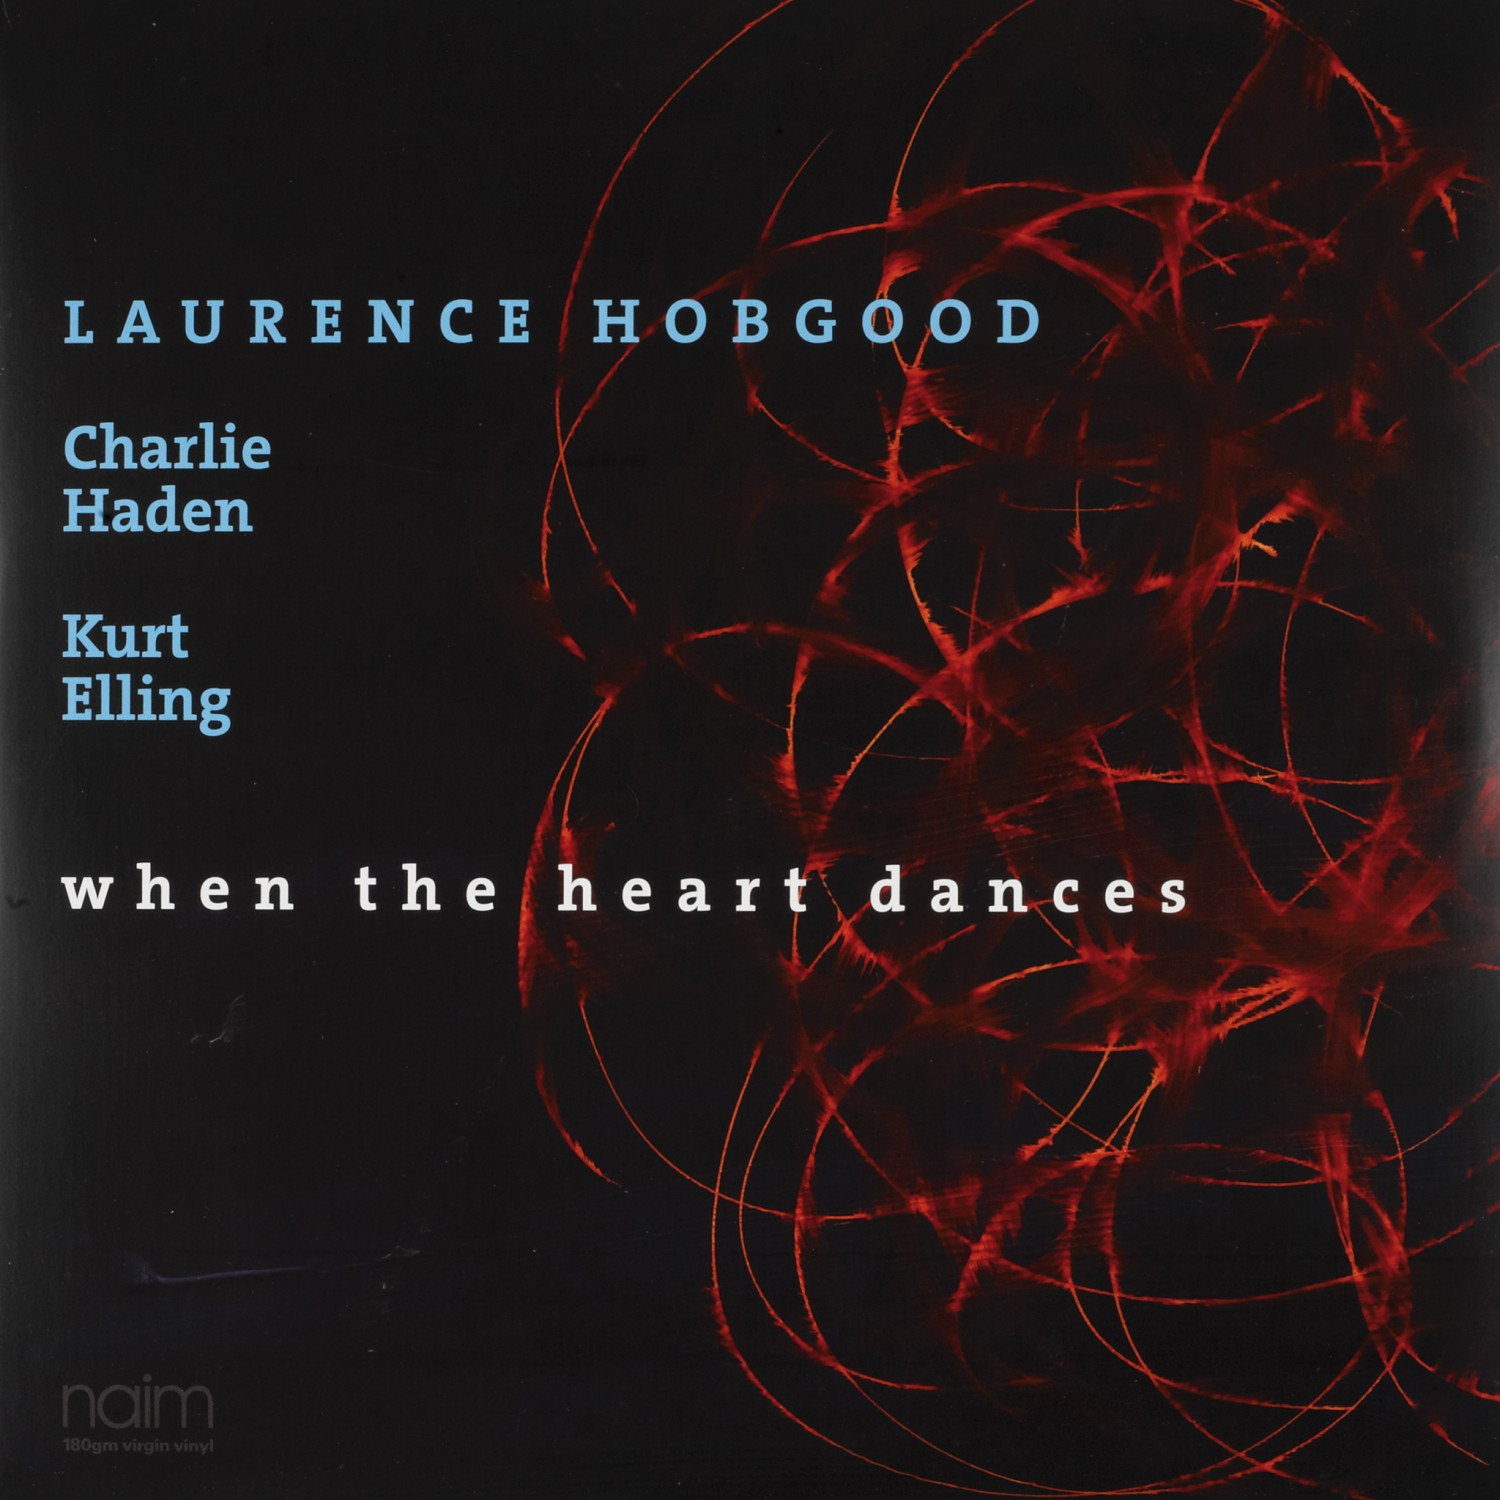 Schallplatte Laurence Hobgood - When the Heart Dances (Naim Jazz) im Test, Bild 1